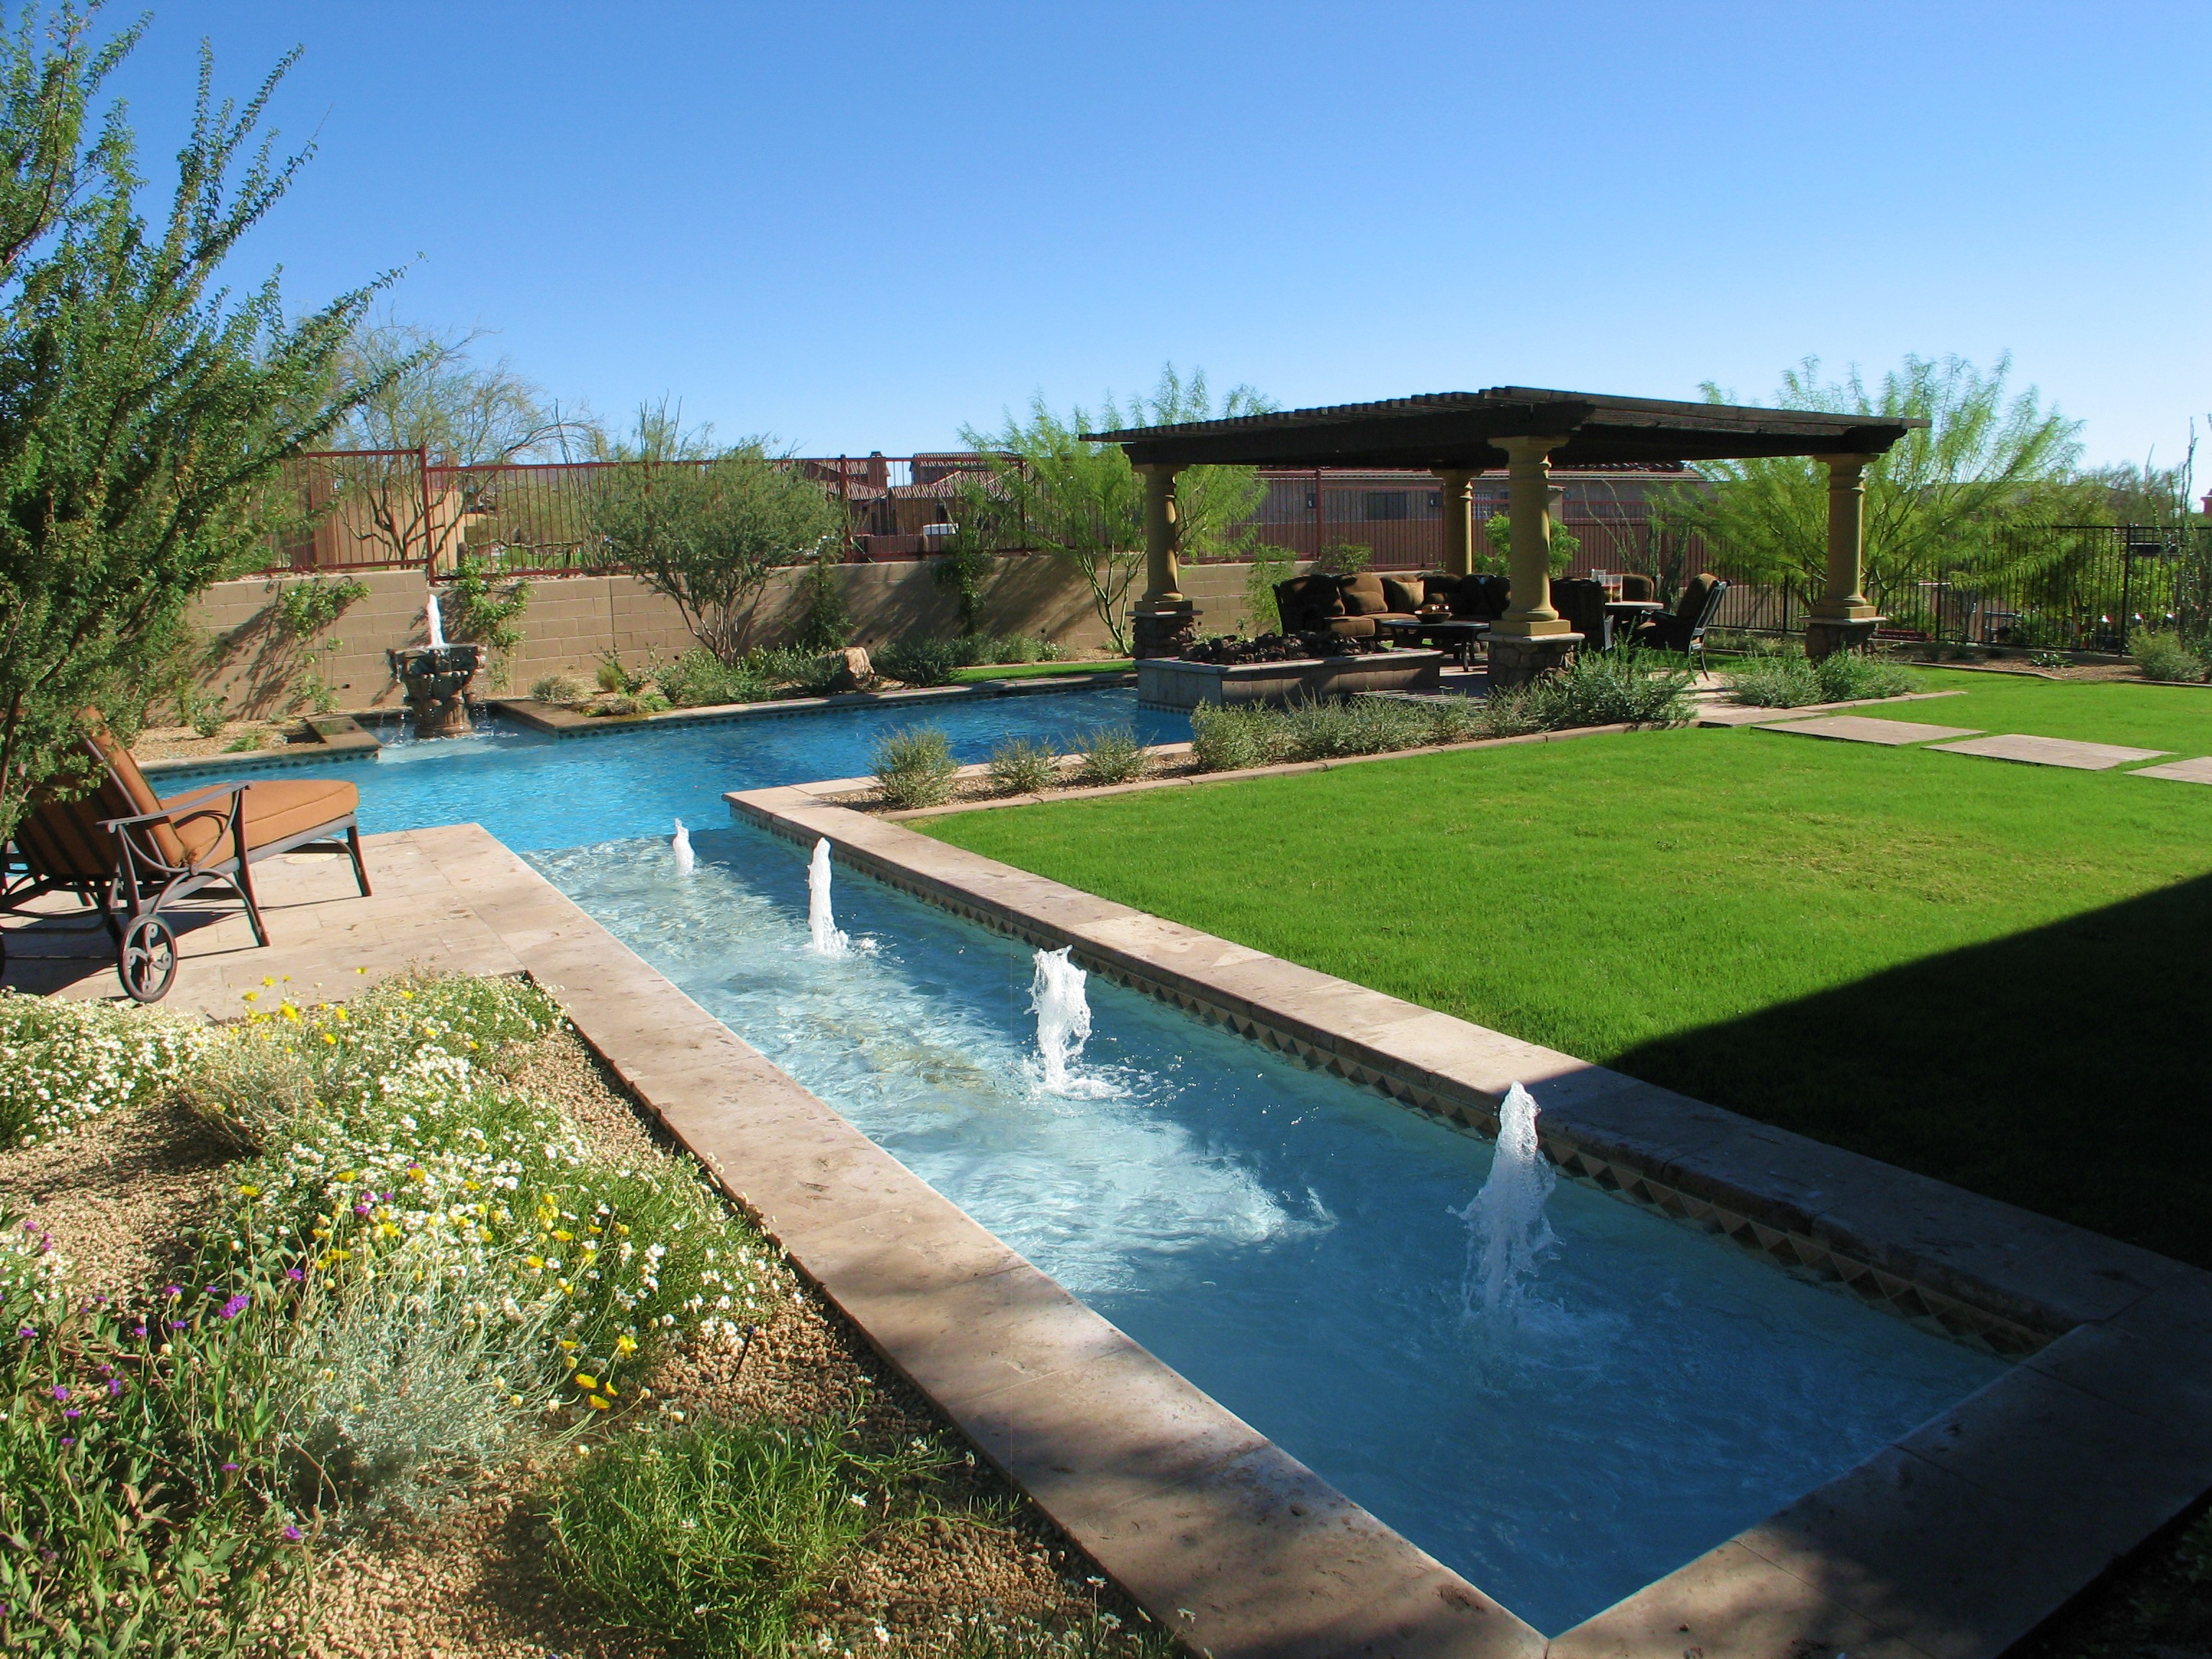 Top 10 Beautiful Backyard Designs